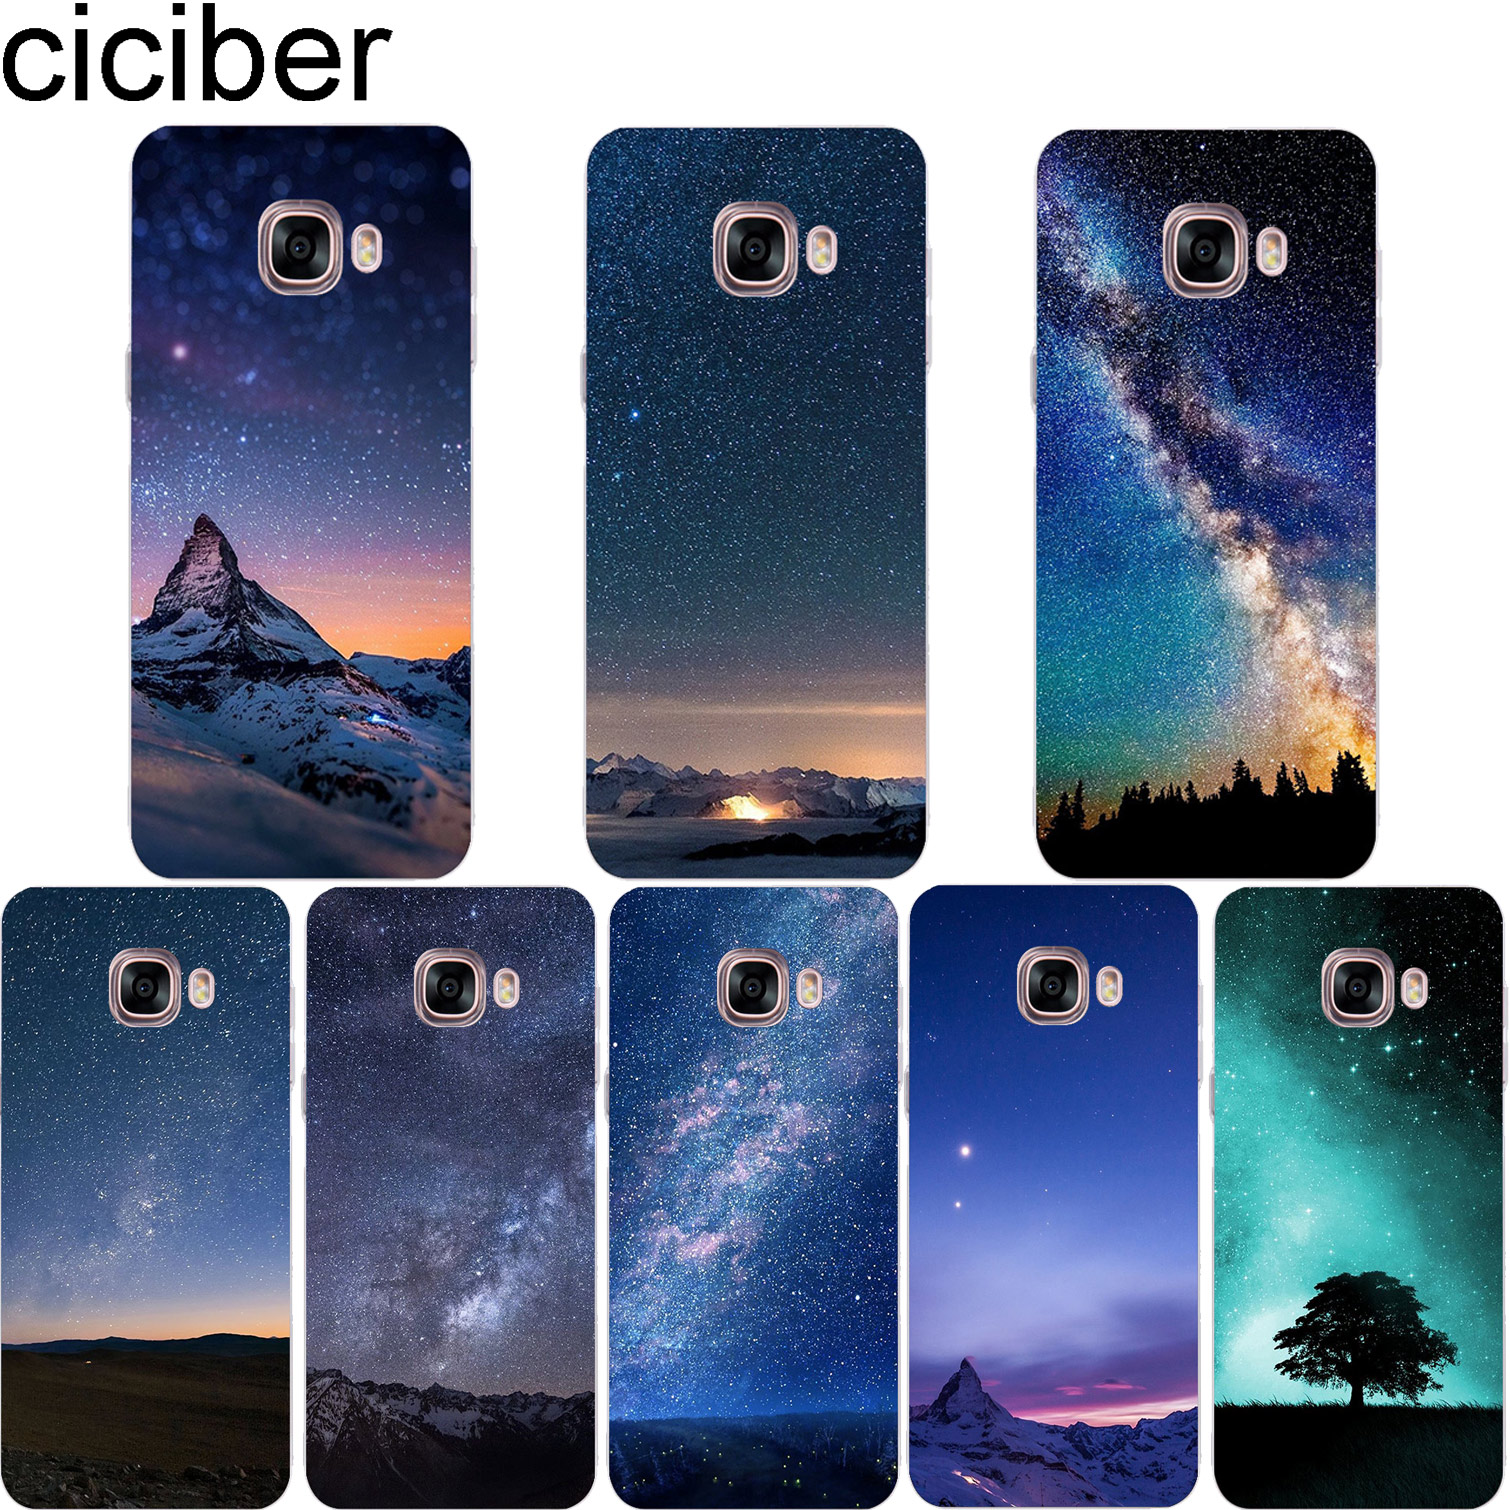 ciciber Northern Lights Phone Case for Samsung Galaxy Note 9 8 3 4 5 Soft TPU Clear Cover C7 C9 C8 C5 Pro 2017 Coque